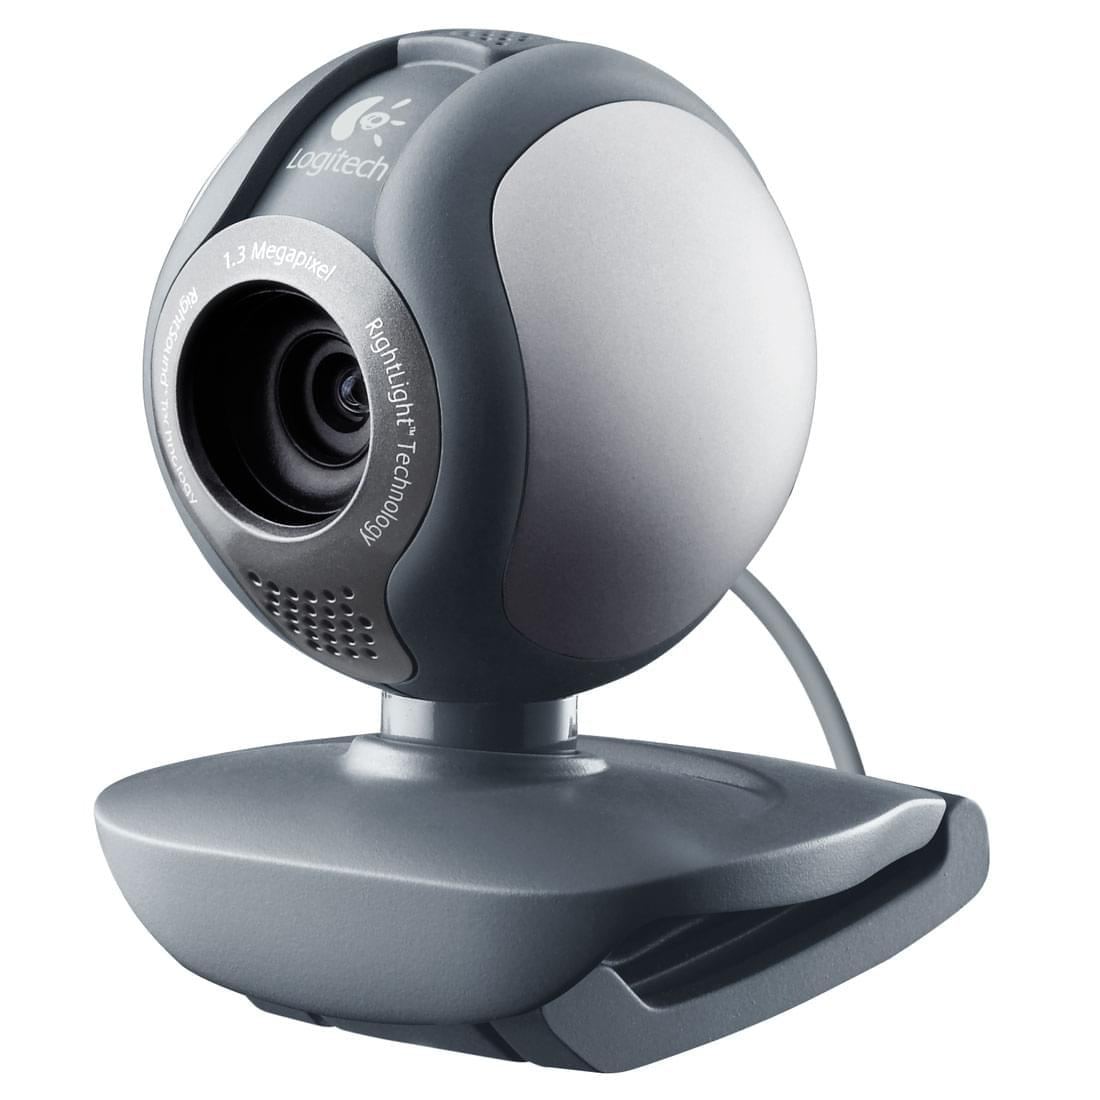 Logitech Webcam B500 OEM - Caméra / Webcam - Cybertek.fr - 0